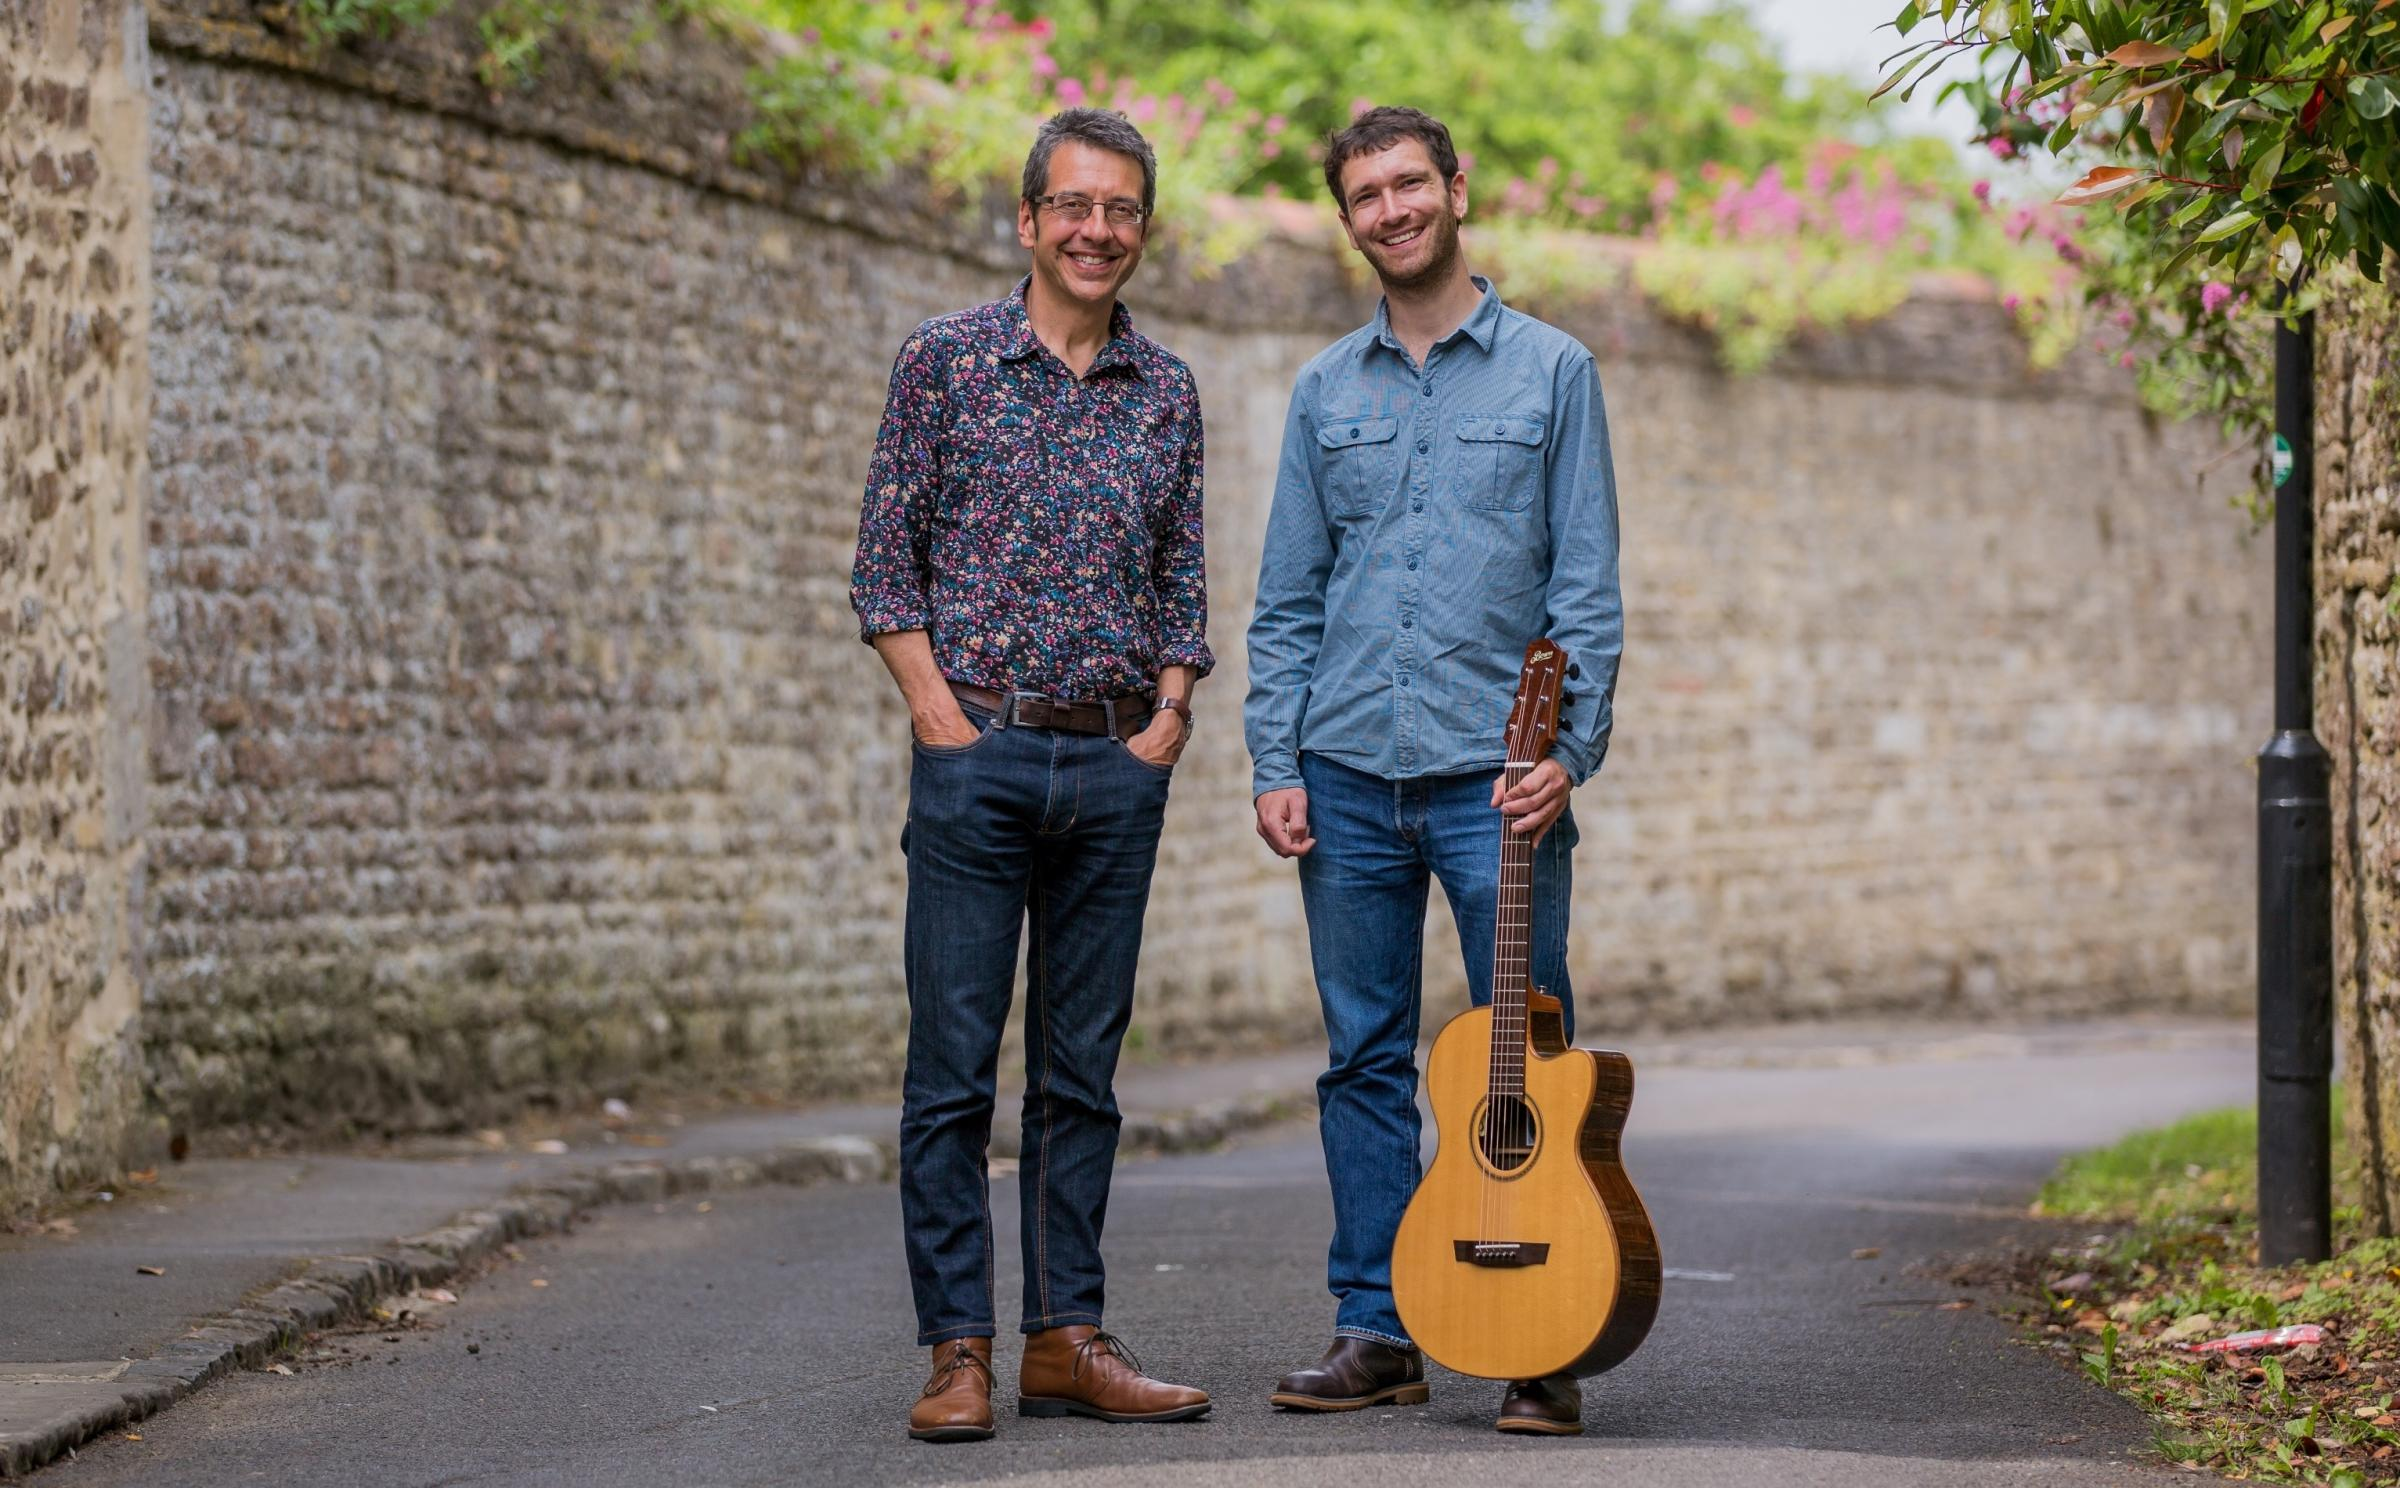 Campaigning close to home: George Monbiot and Ewan McLennan present Breaking the Spell of Loneliness at the North Wall, Oxford